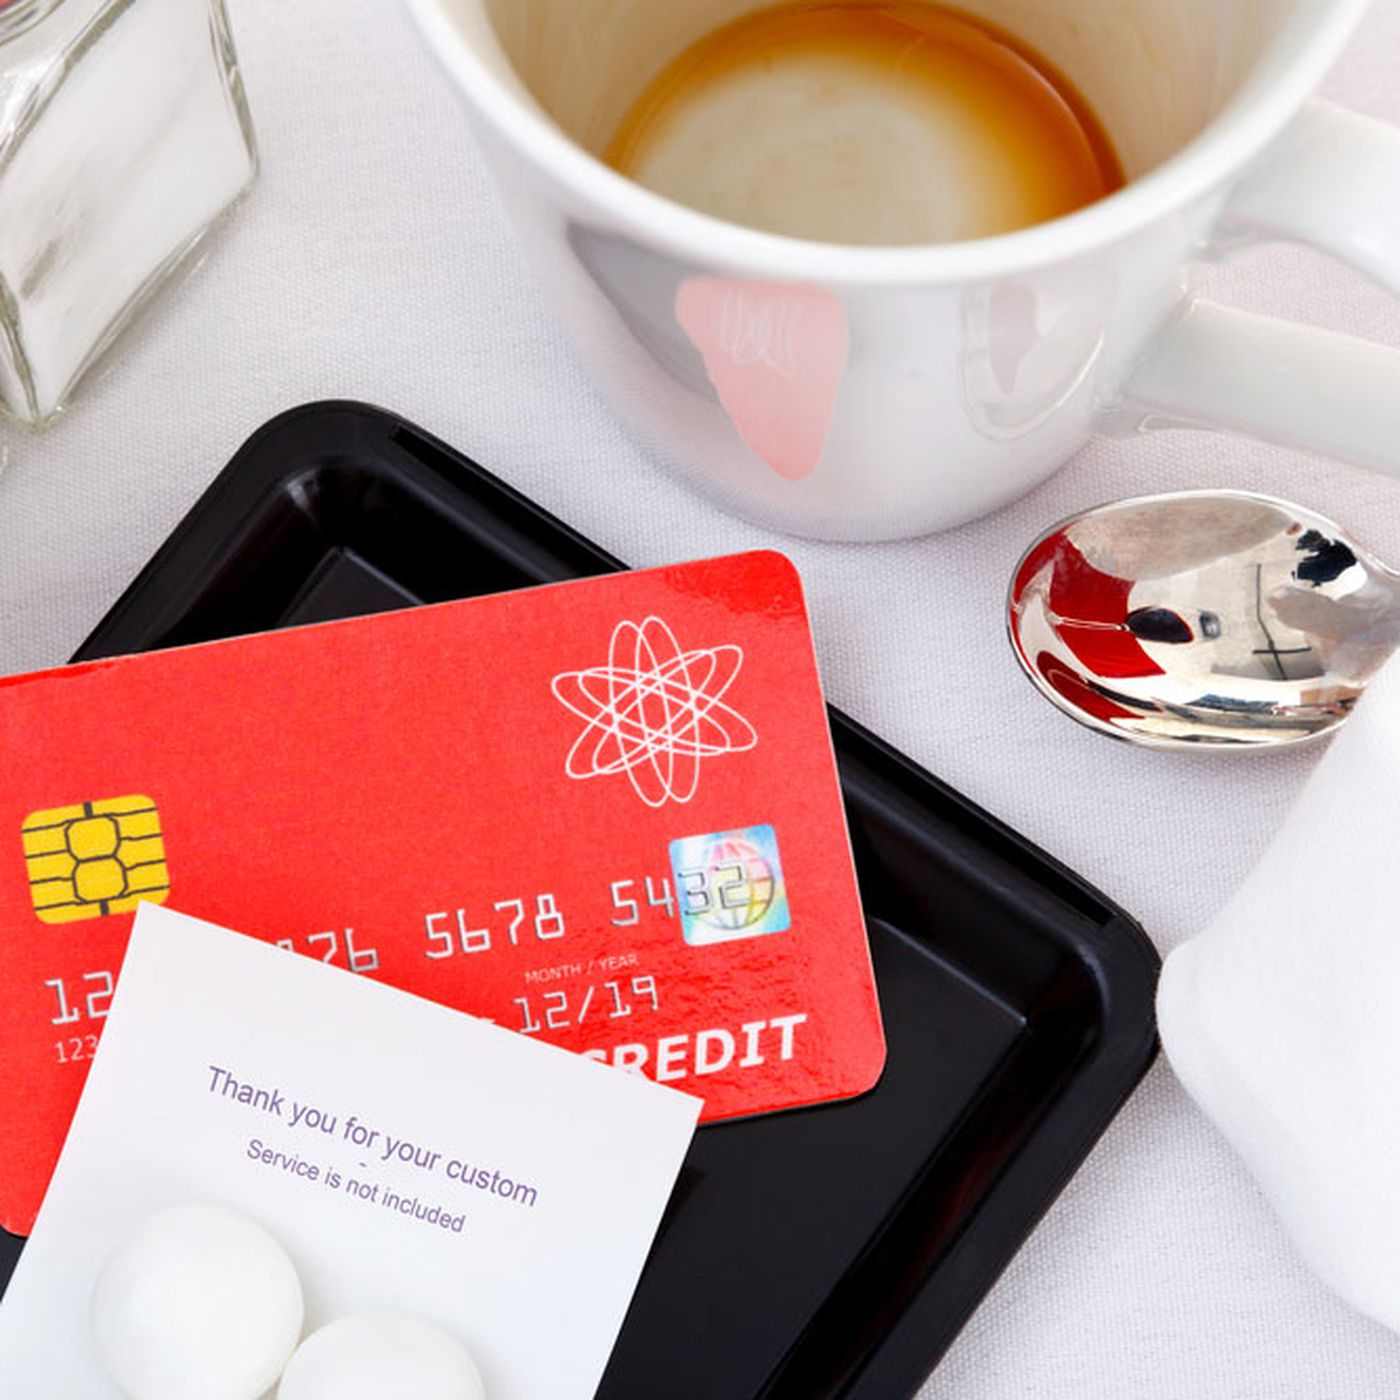 How Does Credit Card Fraud Through a Restaurant Work? - Eater